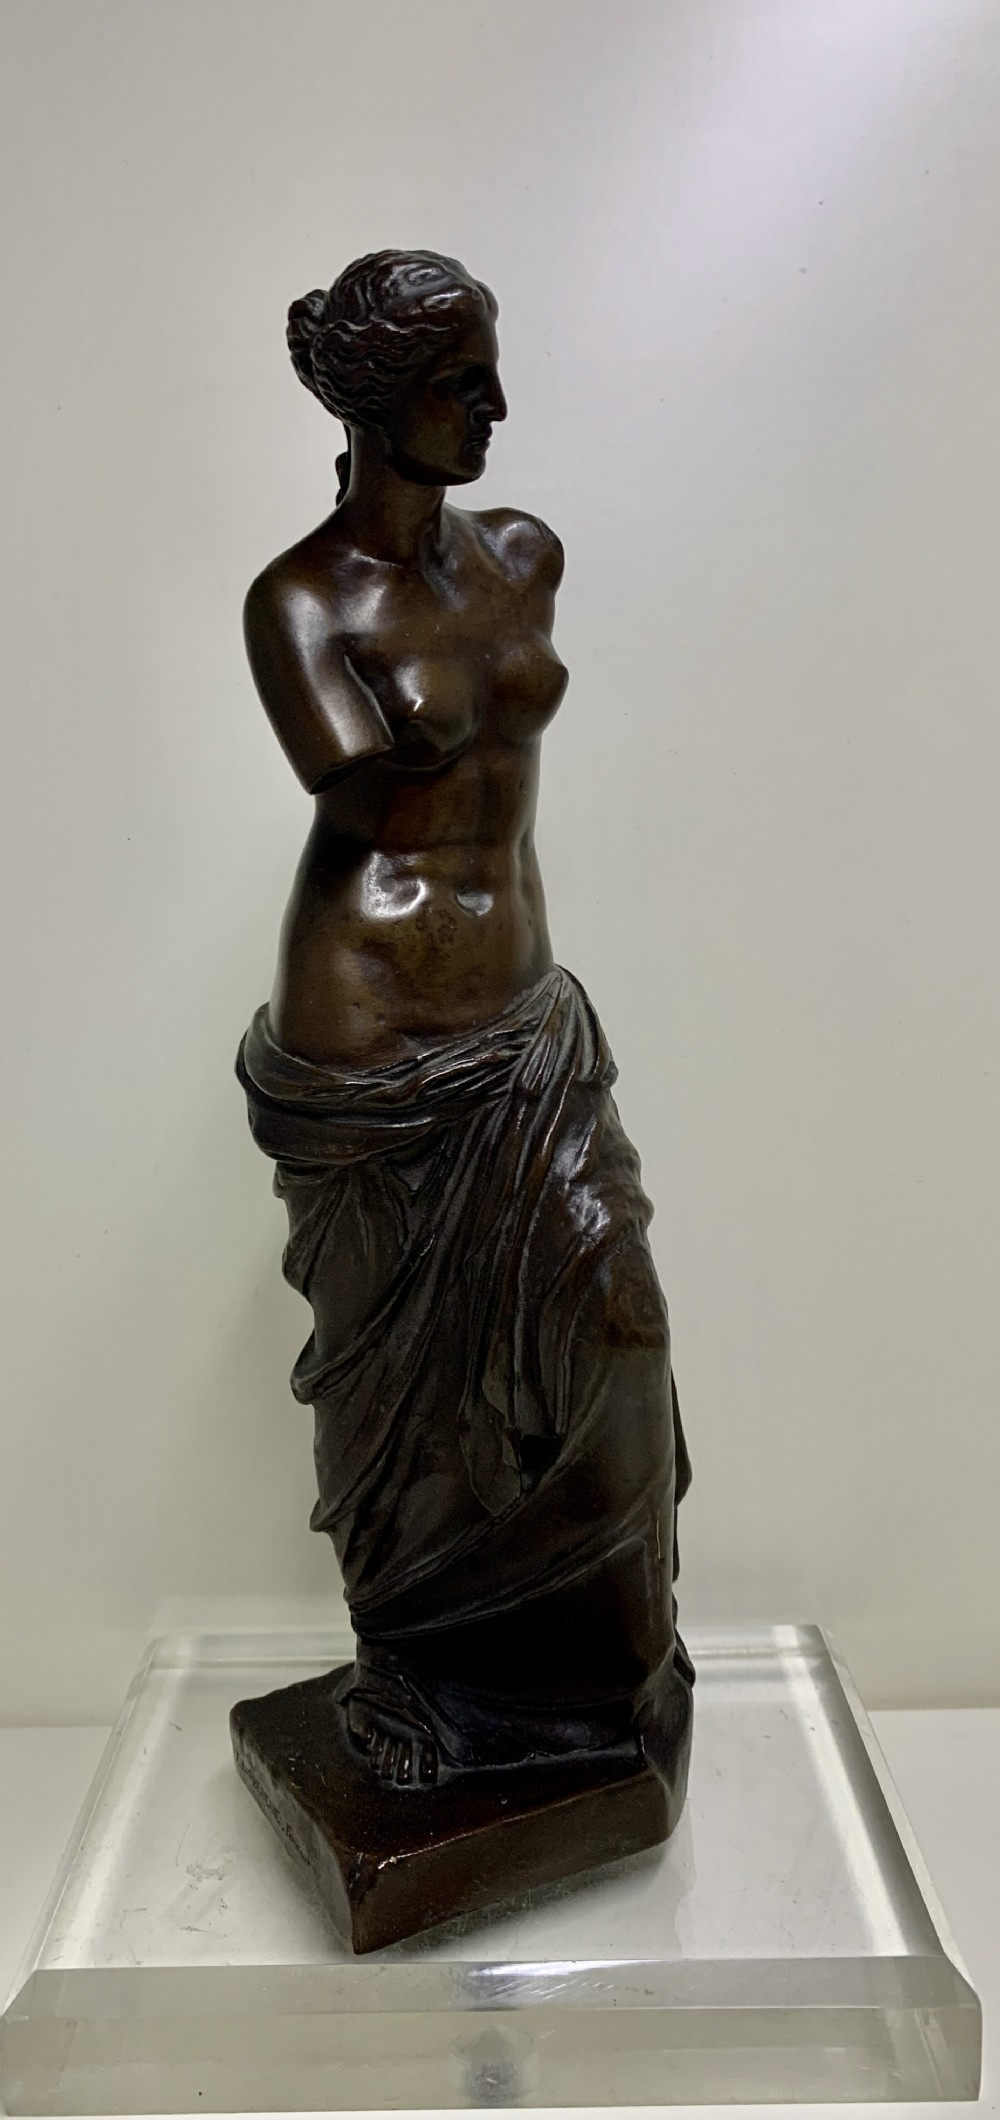 a french 19th century bronze figure of venus de milo by barbedienne